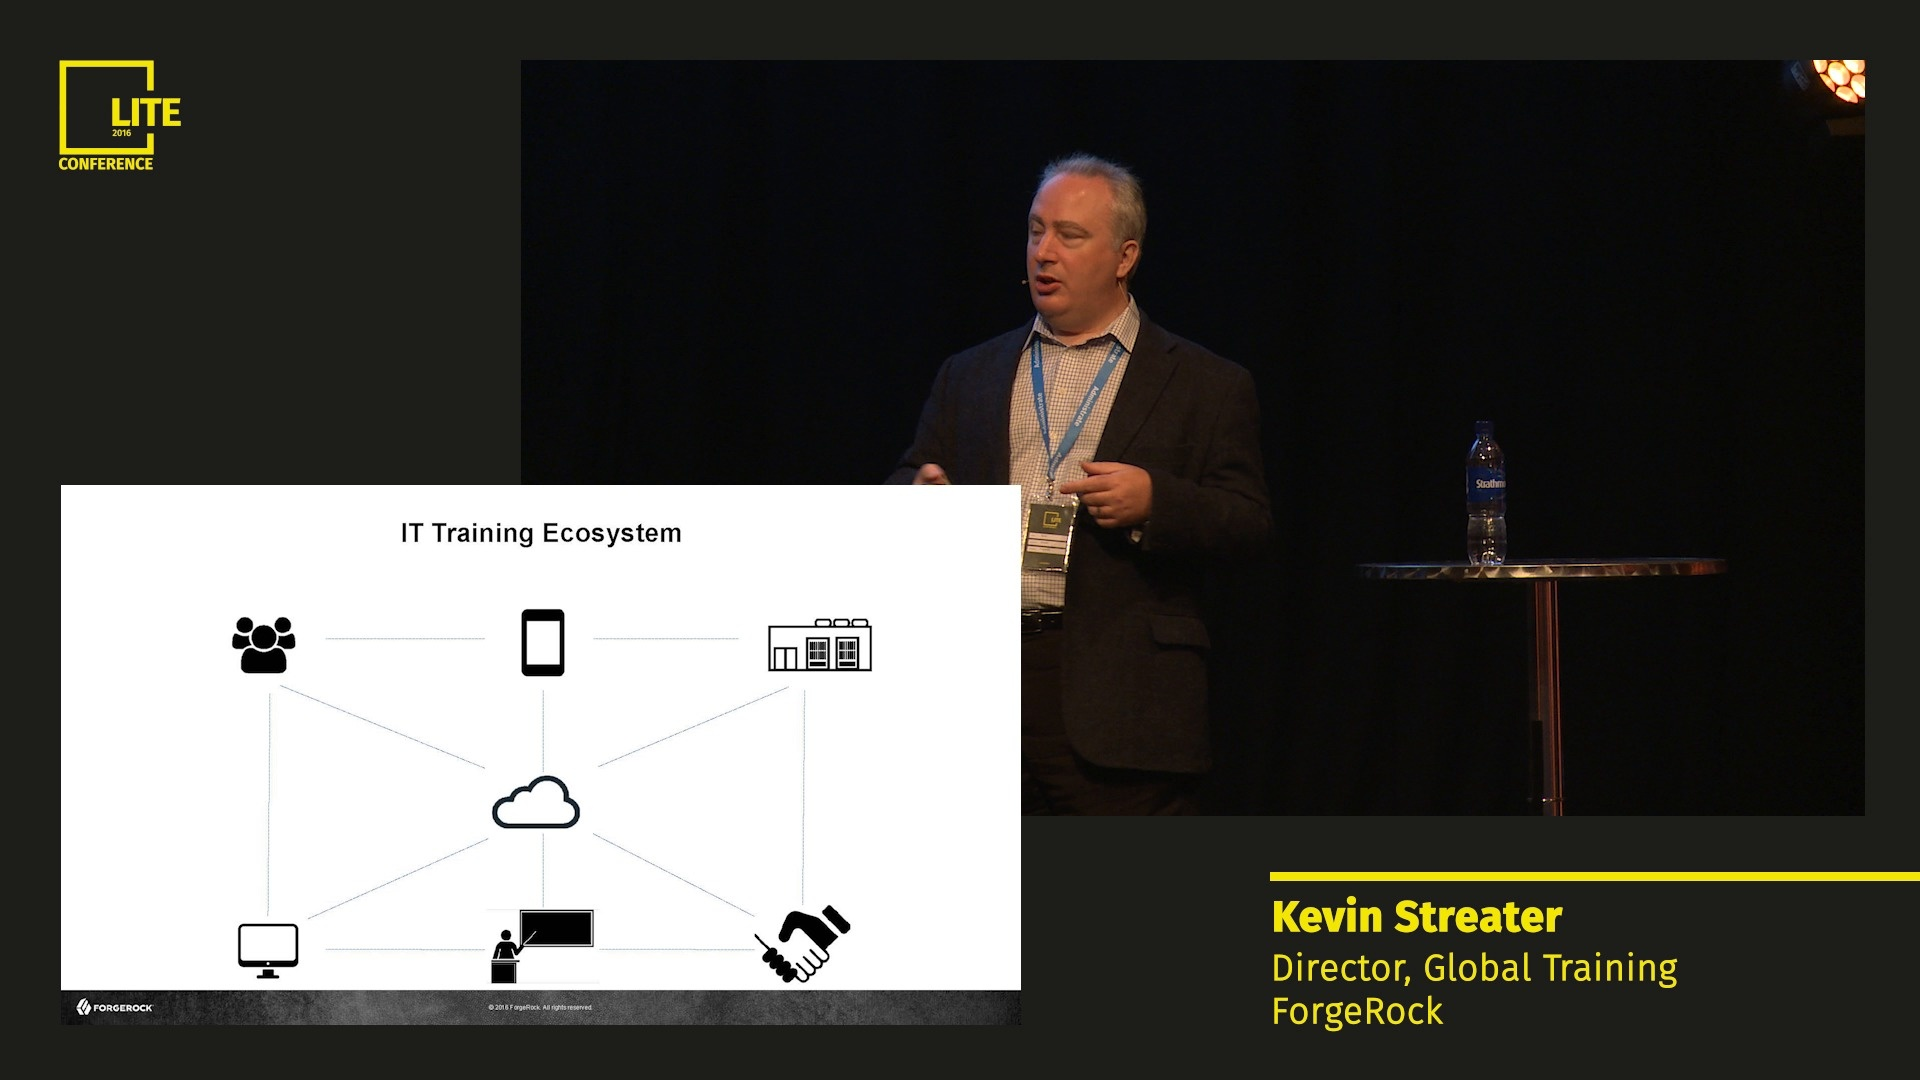 How Administrate Changed our Training Business [Kevin Streater]